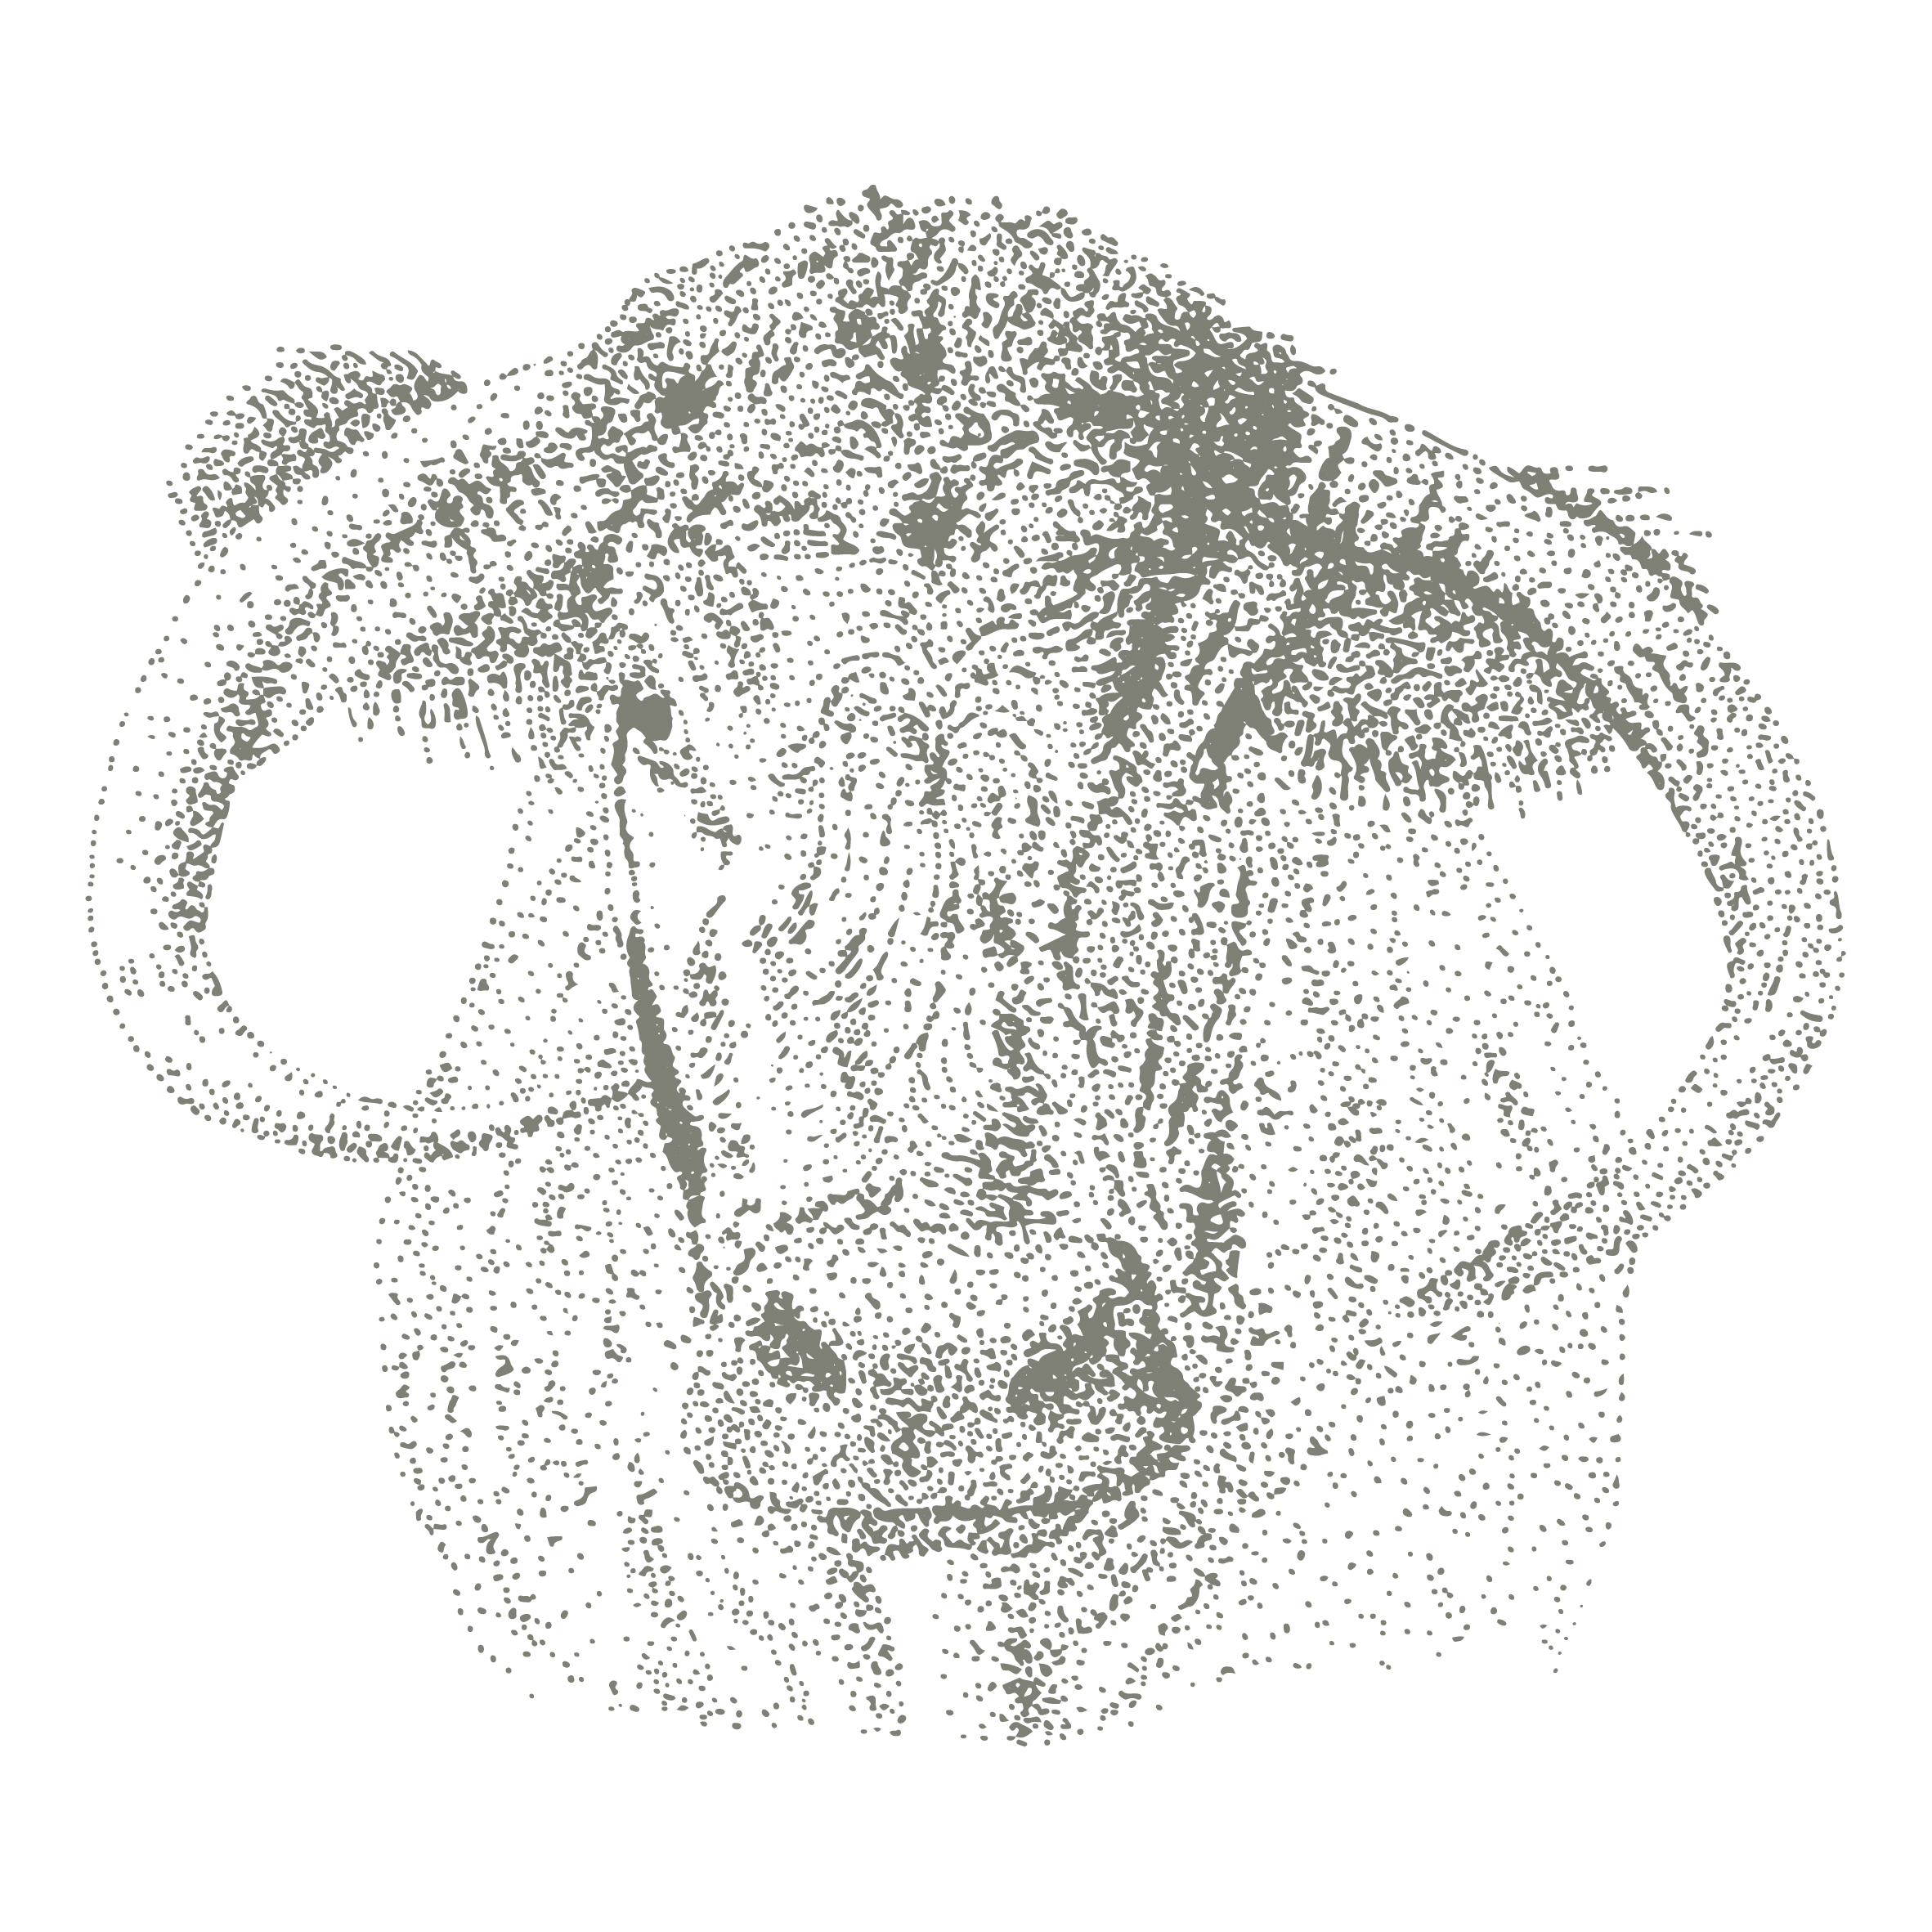 longhorn cattle illustration for the pure meat company branding by ditto creative, branding agency for small businesses in kent